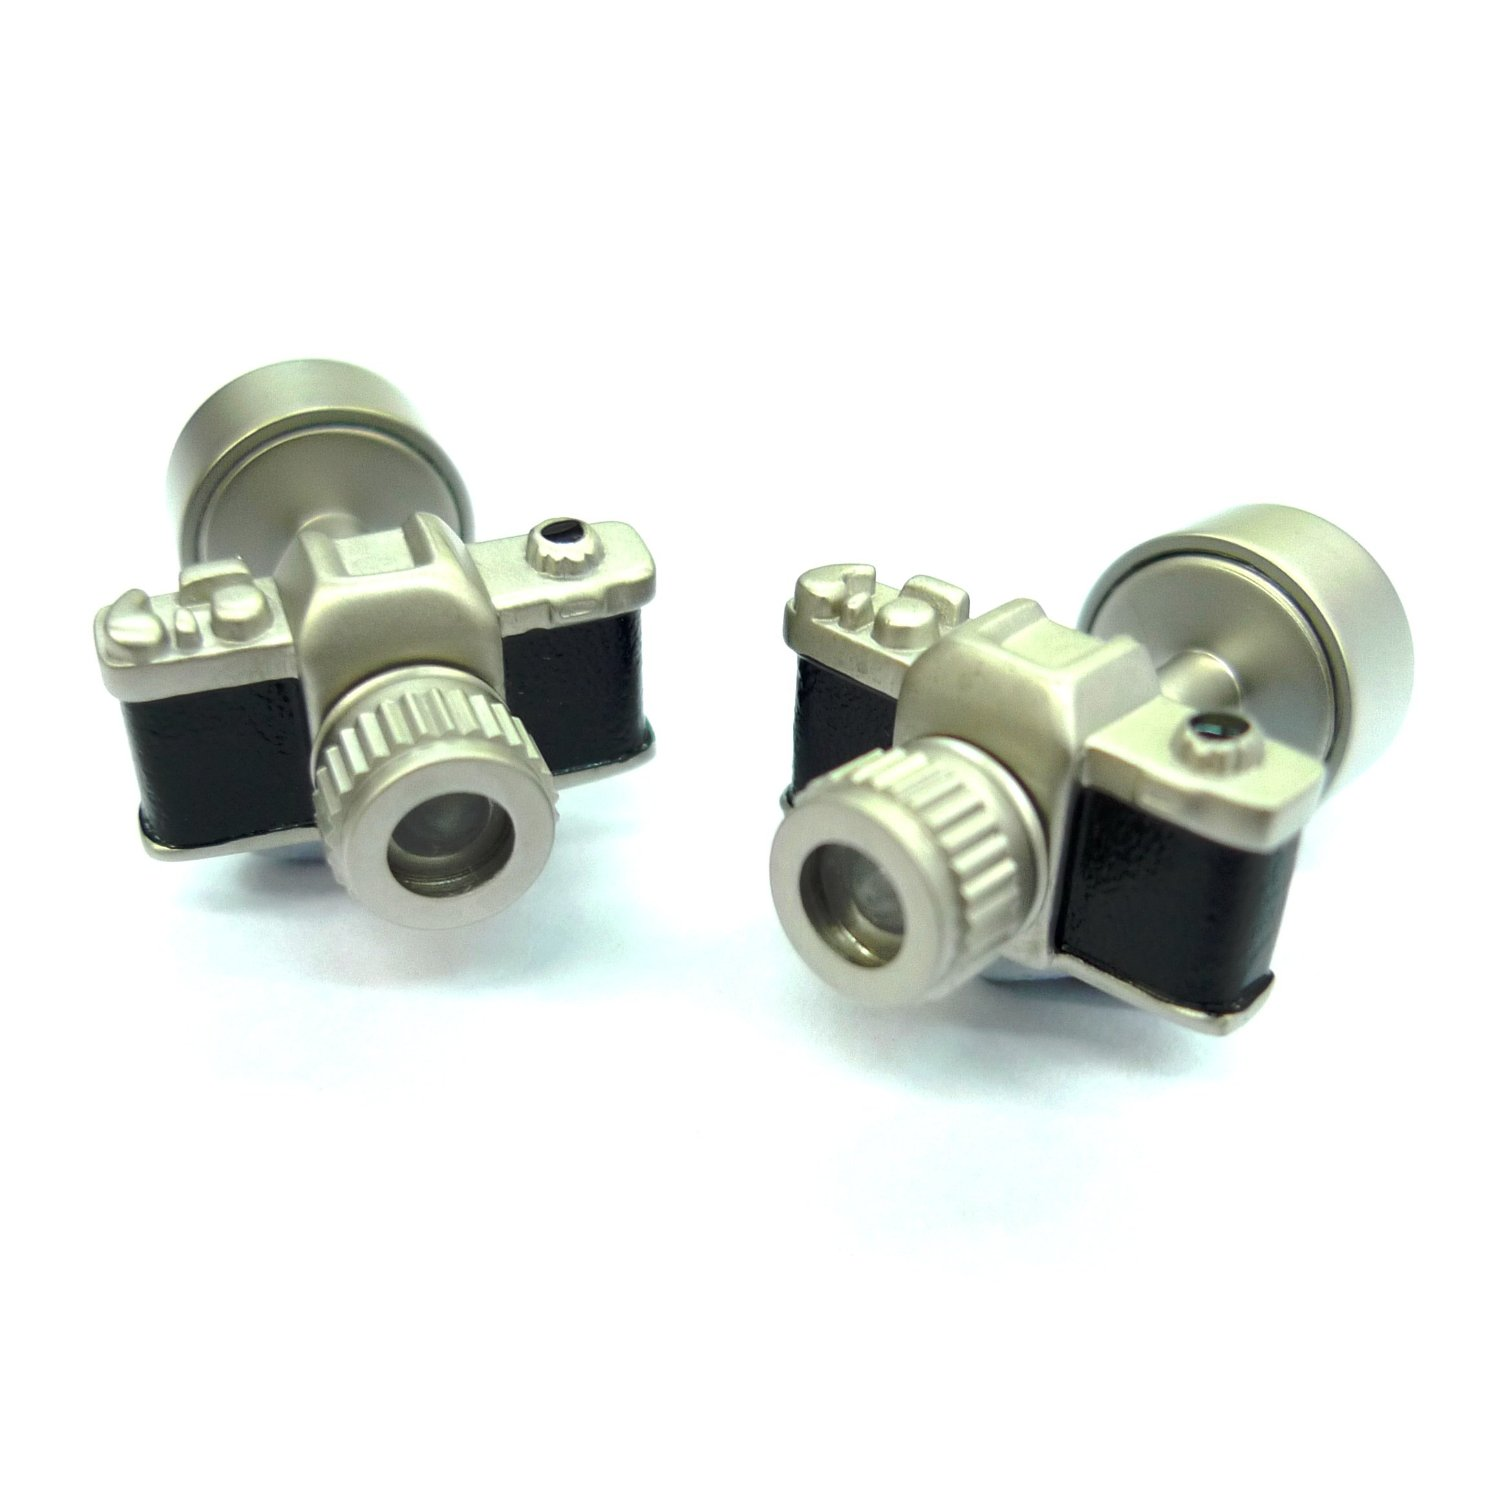 Tailor B 3D LED Light Camera Cufflinks with White Light Photography Press it, it lights up!